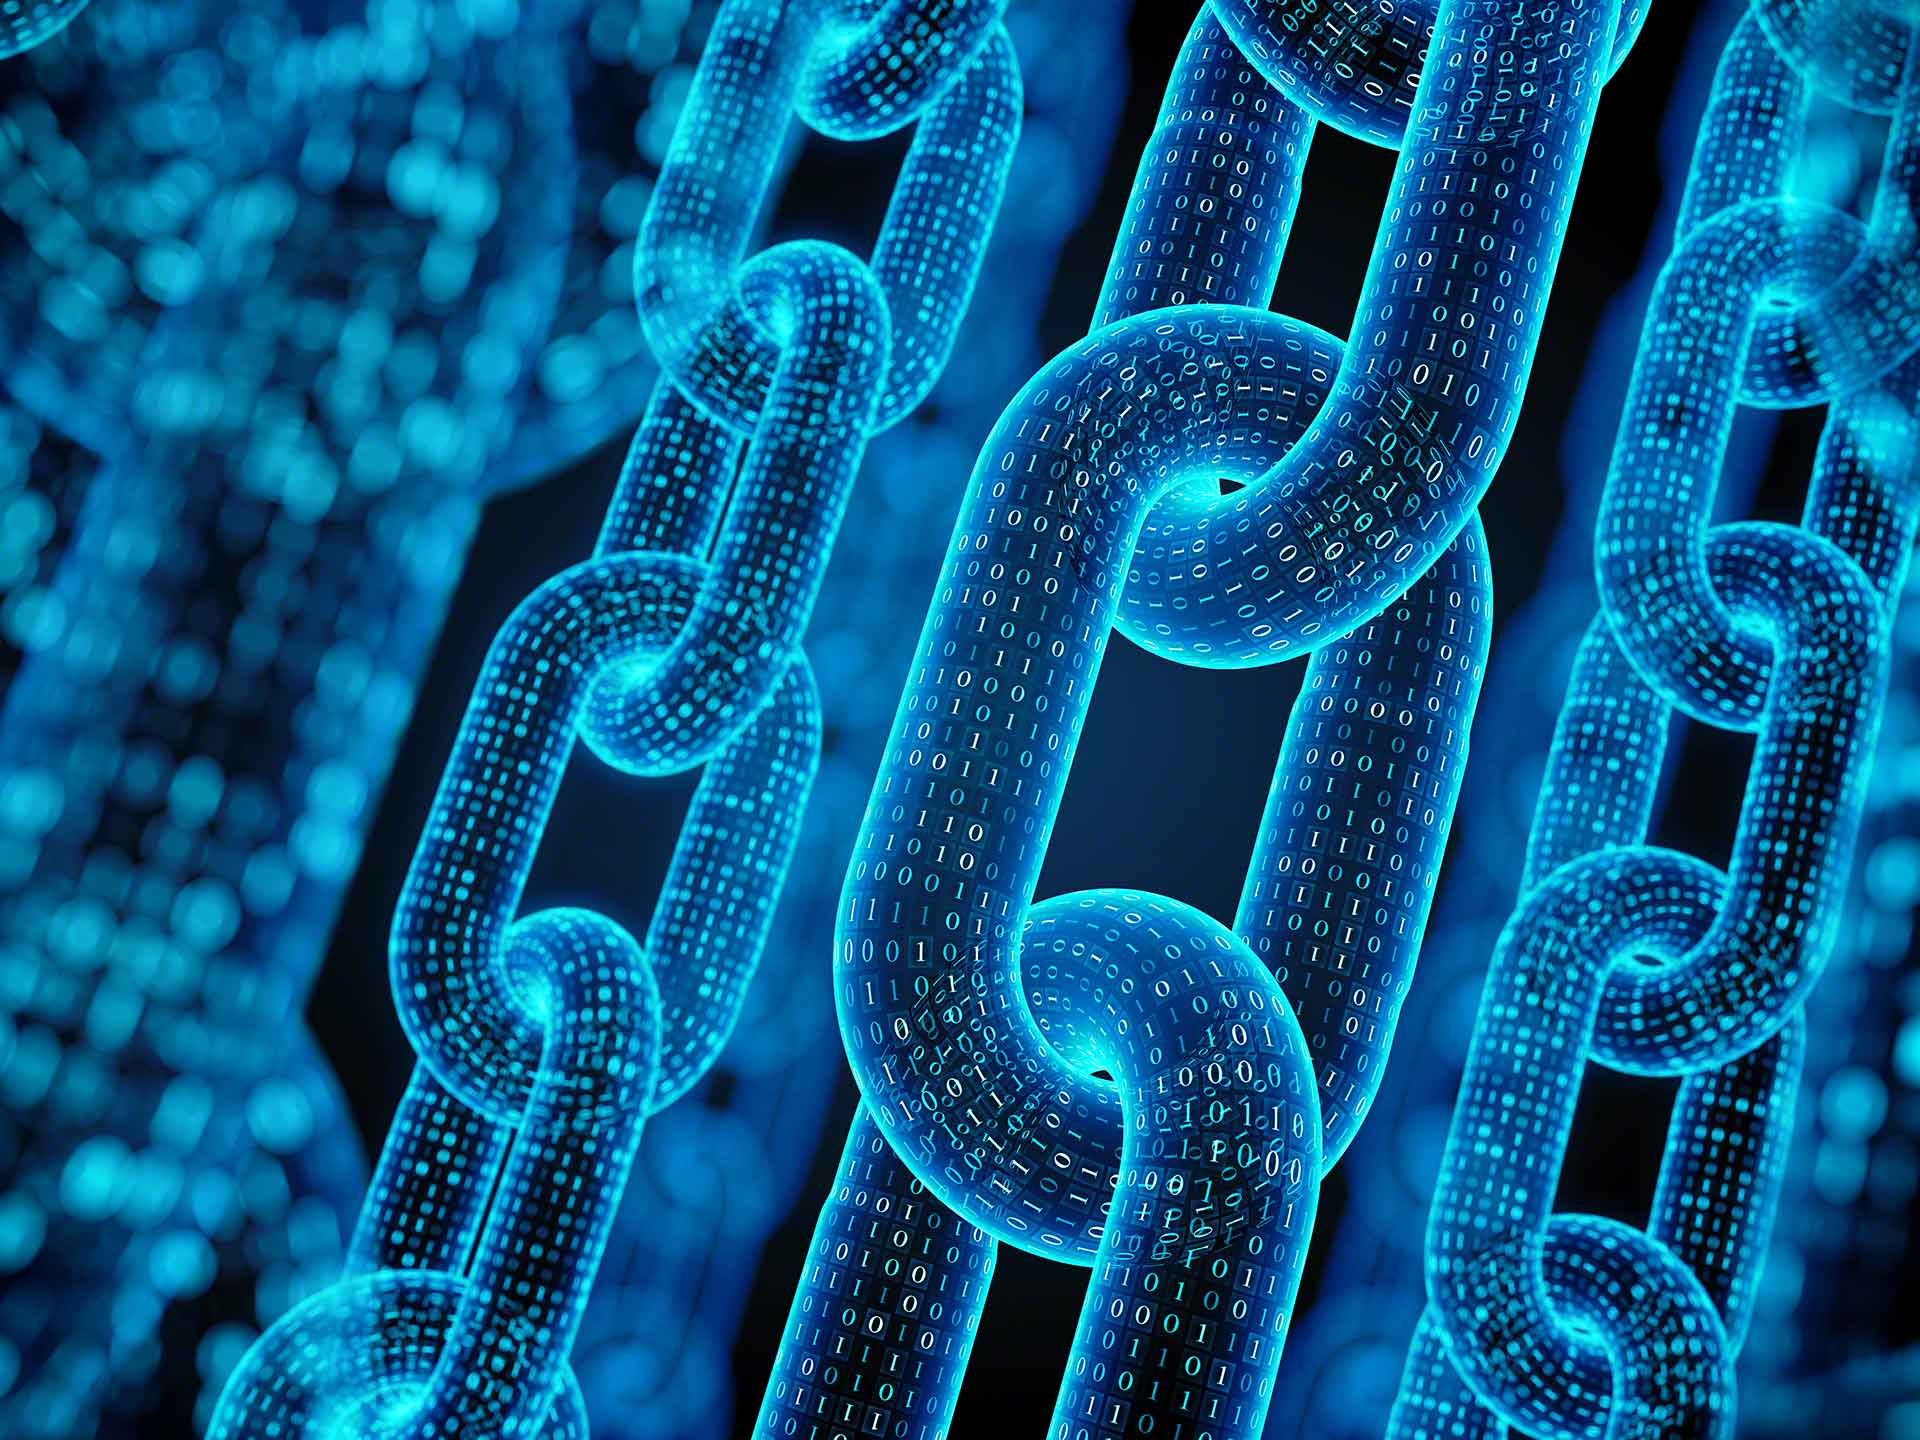 With the implementation of blockchain, the exchange of industrial information will be agile and secure